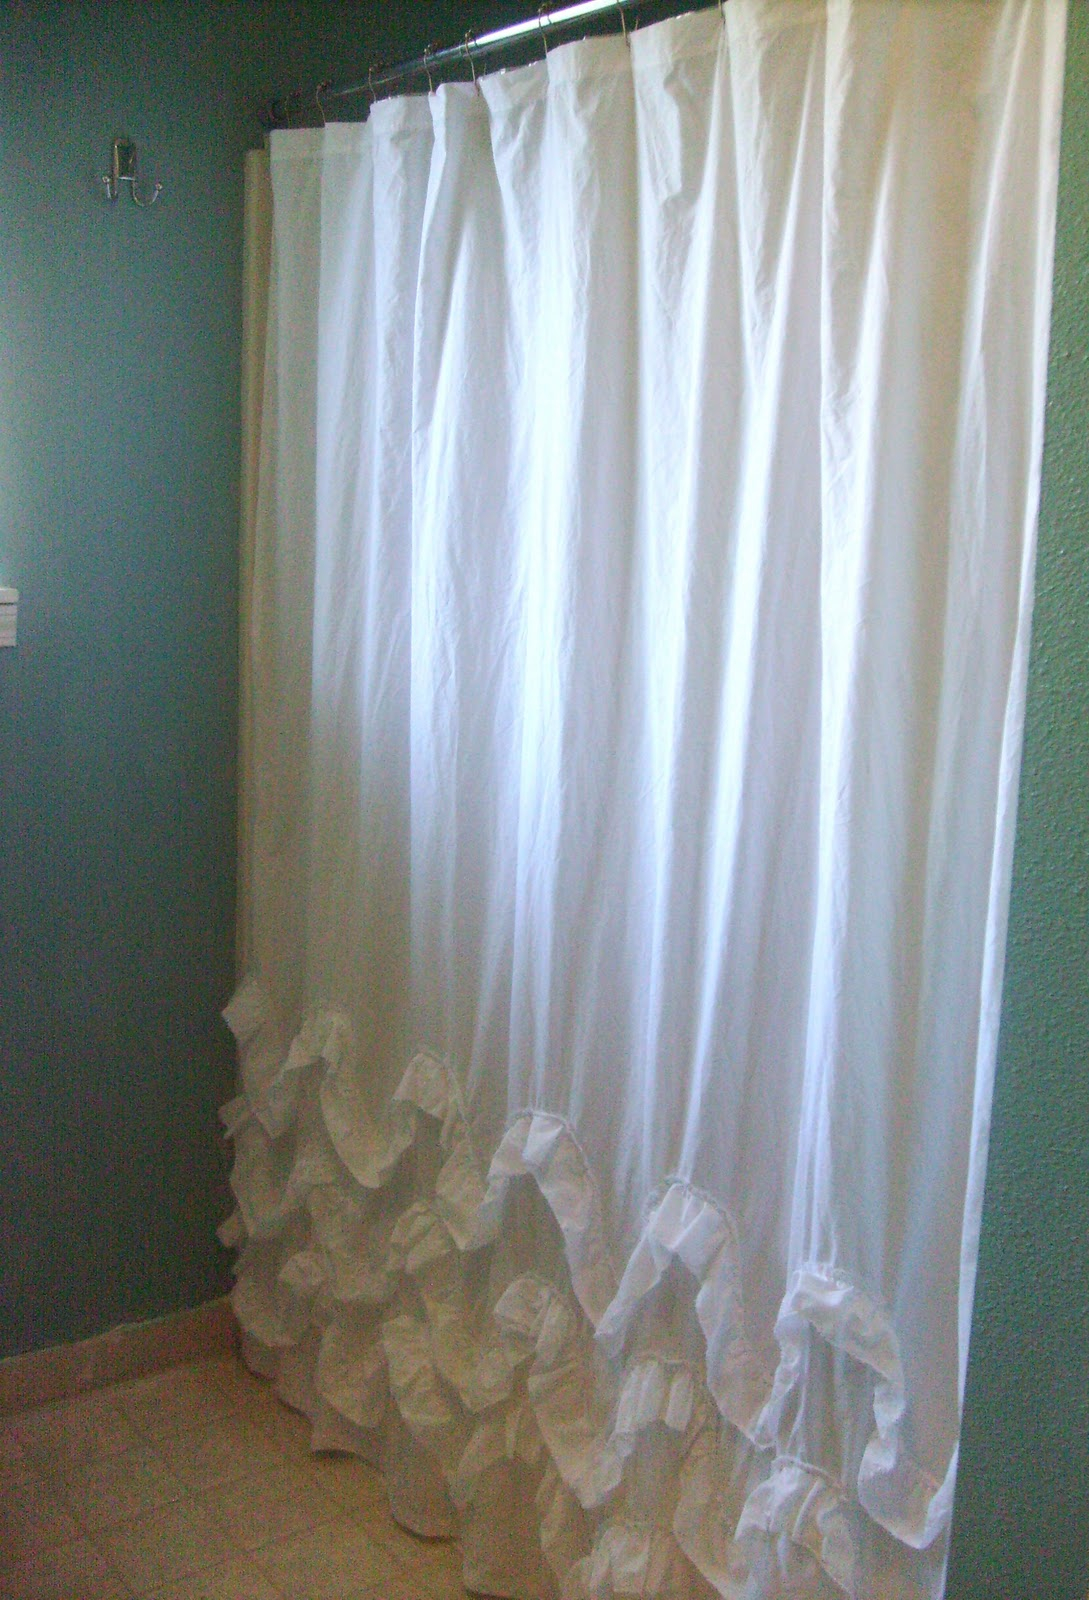 Diy Waves Of Ruffles Shower Curtain Tutorial Create Enjoy regarding dimensions 1089 X 1600